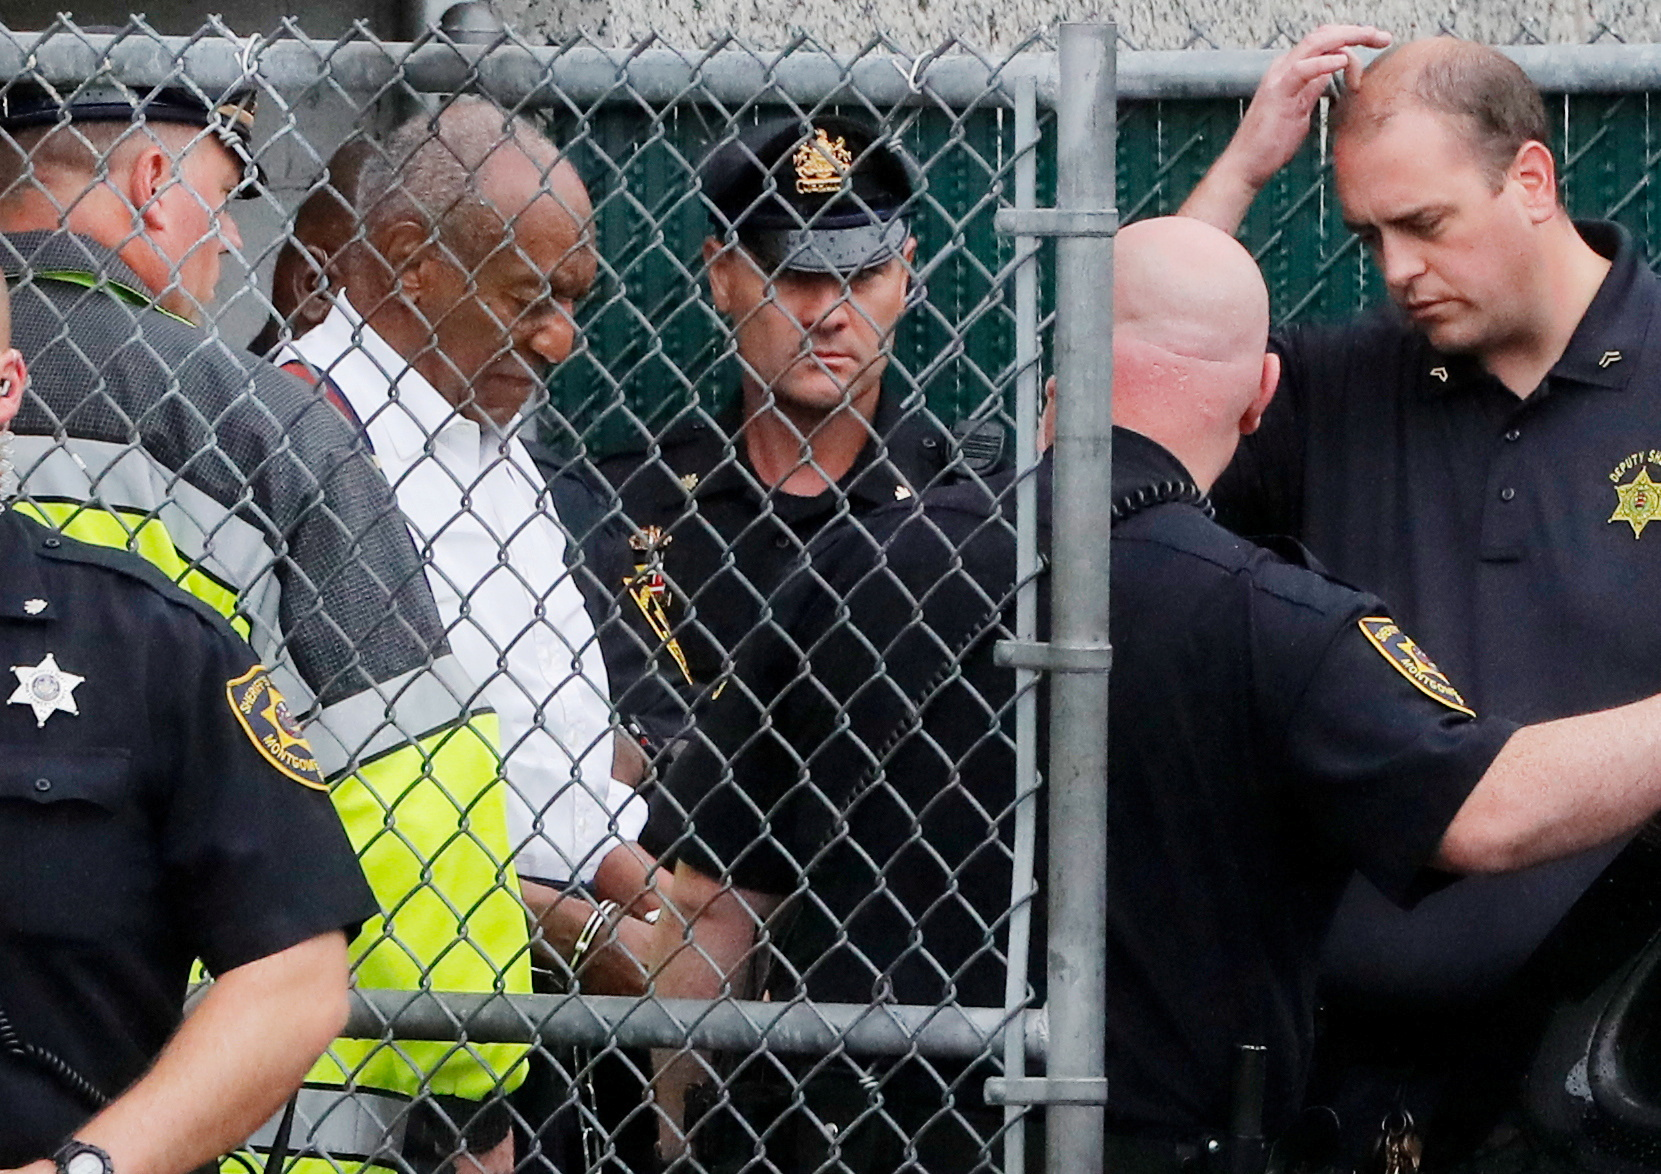 Actor and comedian Bill Cosby leaves the Montgomery County Courthouse in handcuffs after sentencing in his sexual assault trial in Norristown, Pennsylvania, U.S., September 25, 2018. REUTERS/Brendan McDermid